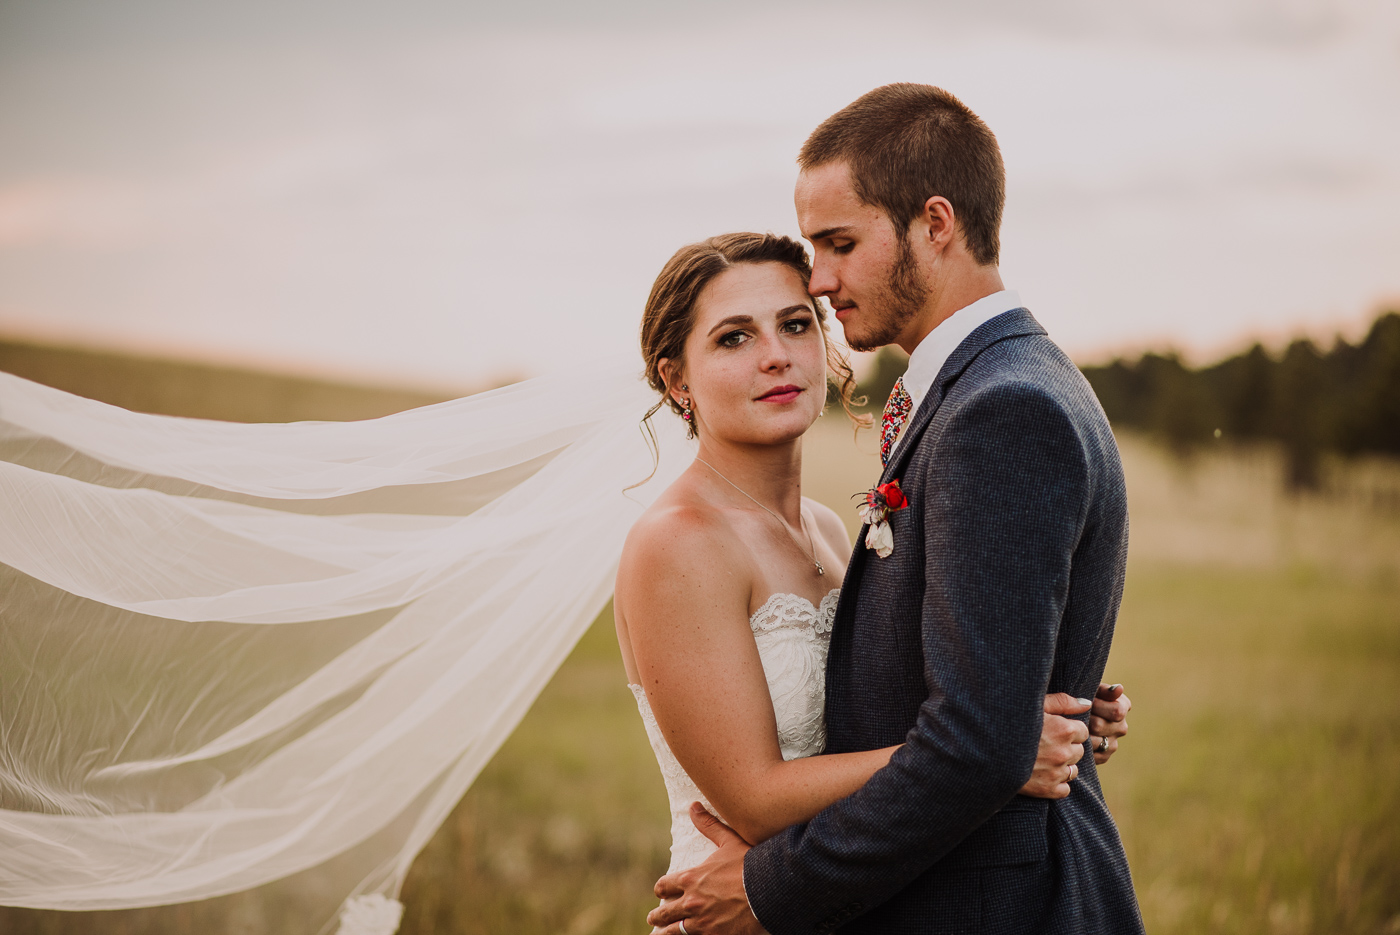 PHOCO2018TopPhotos_portrait_wedding-10.jpg